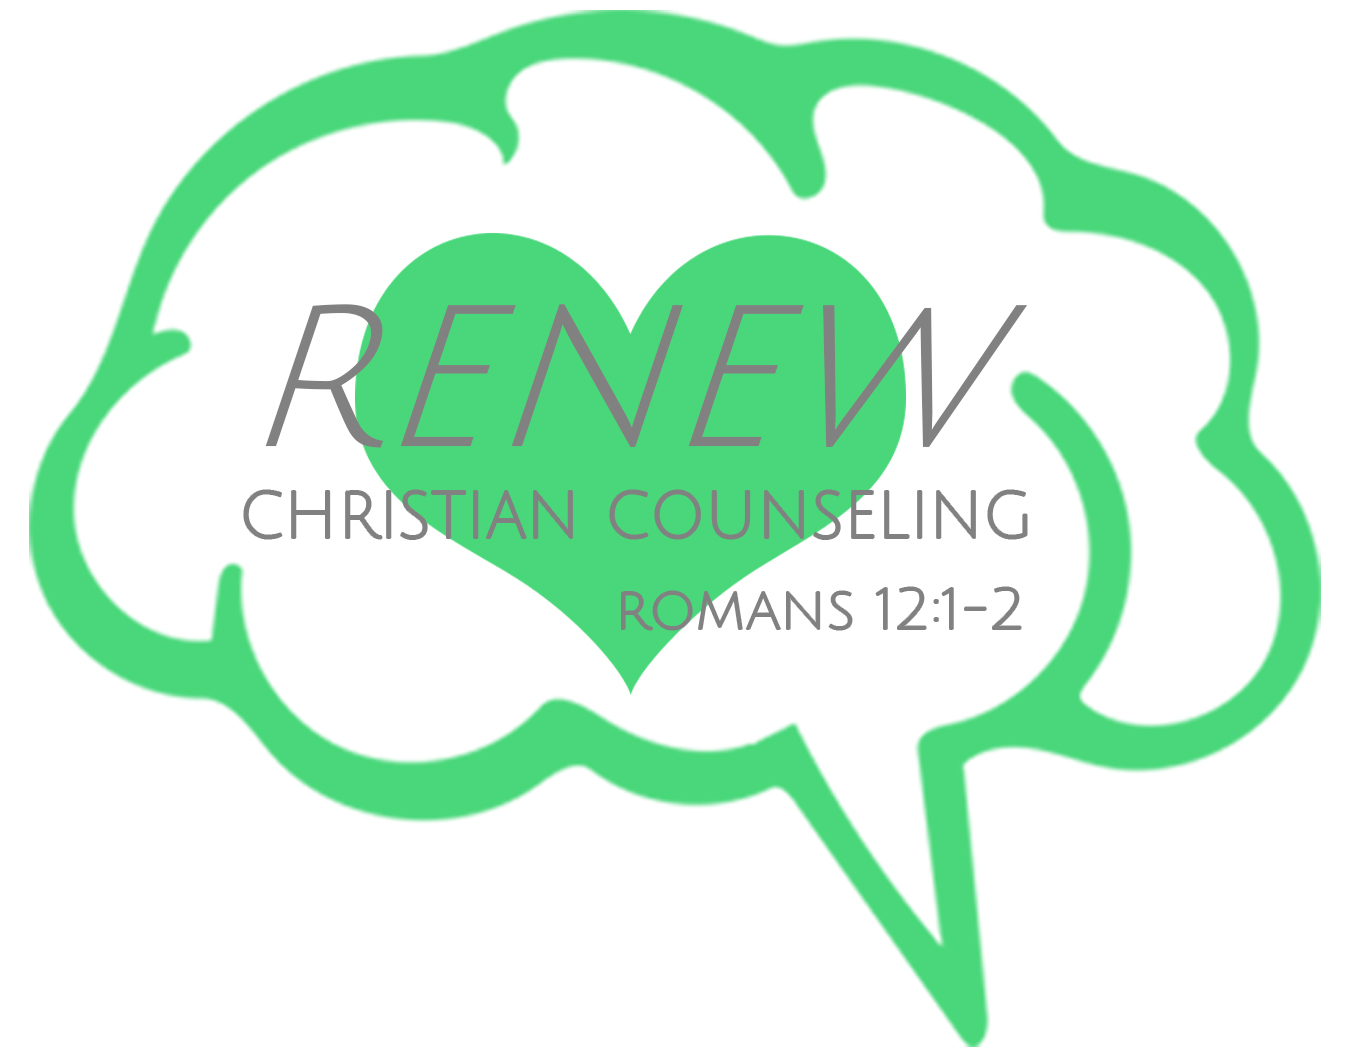 Renew Christian Counseling